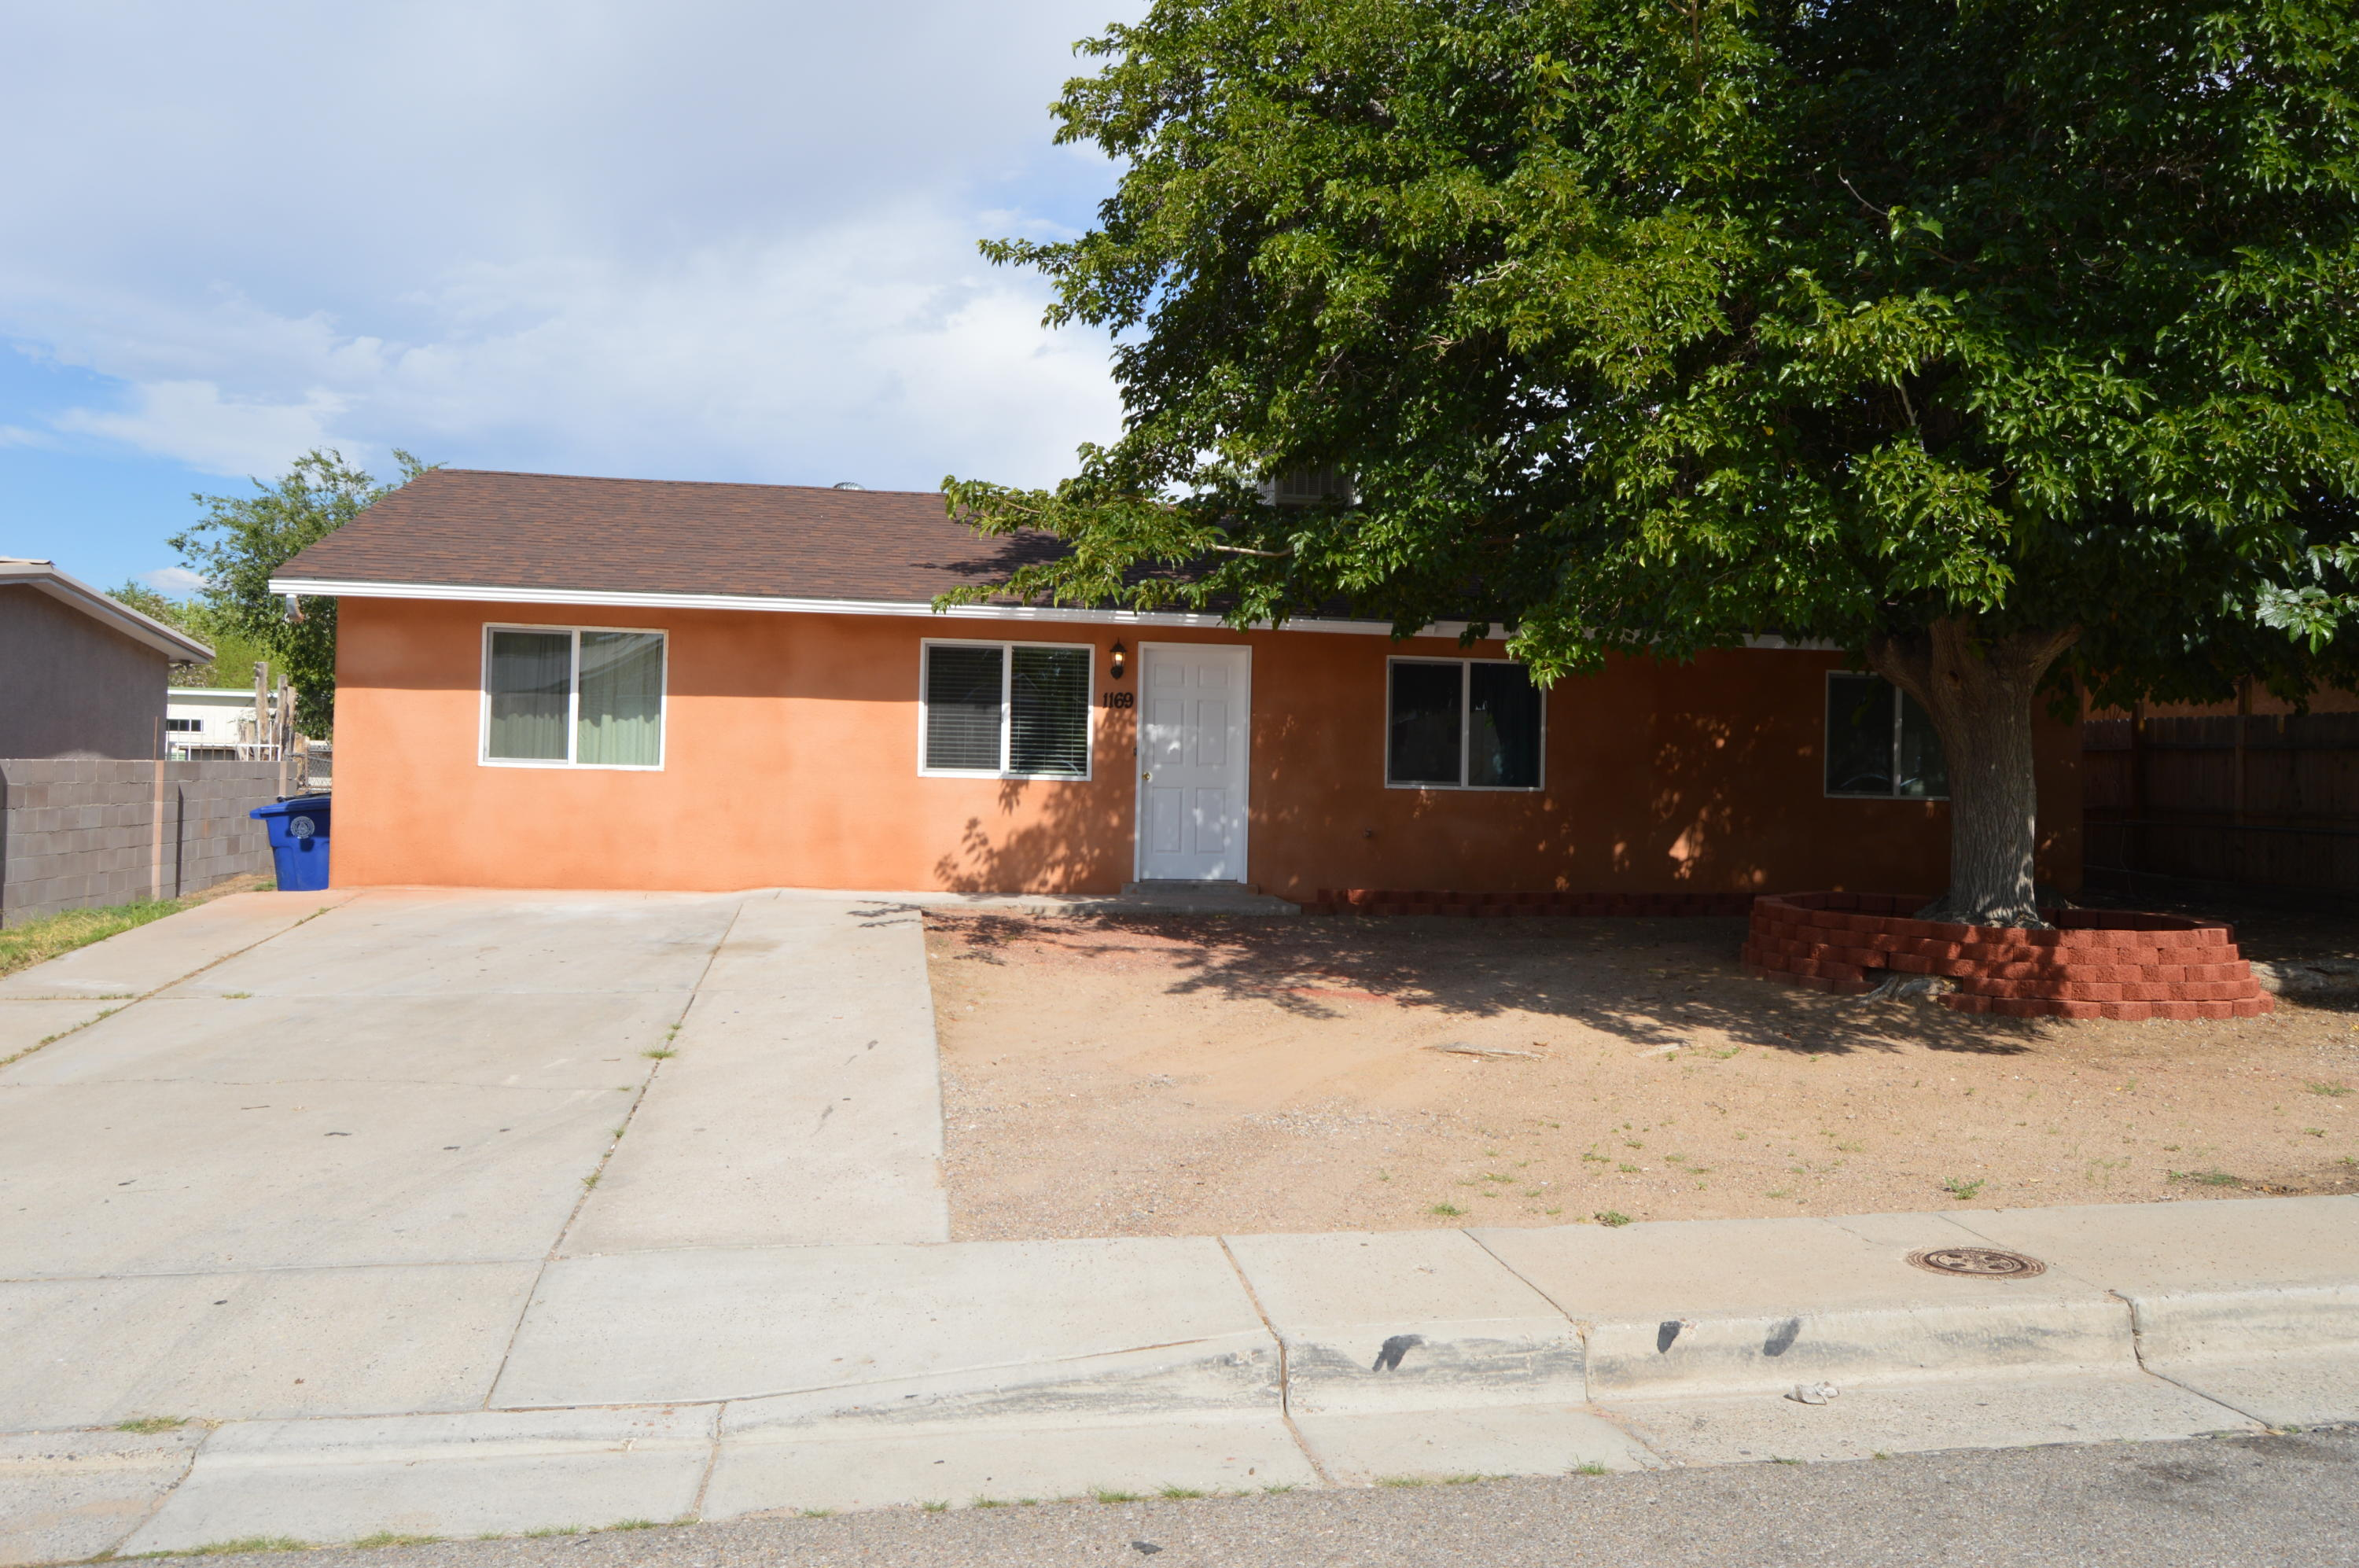 Westgate Heights,  Home features  4 bedroom, 2 bath, 4th bedroom could also be a secondary living area.  Recent upgrades done in 2021 :  roof, vinyl double pane windows,  bathrooms, furnace, evaporative cooler, window blinds, fresh paint. Open patio, back yard access, views,